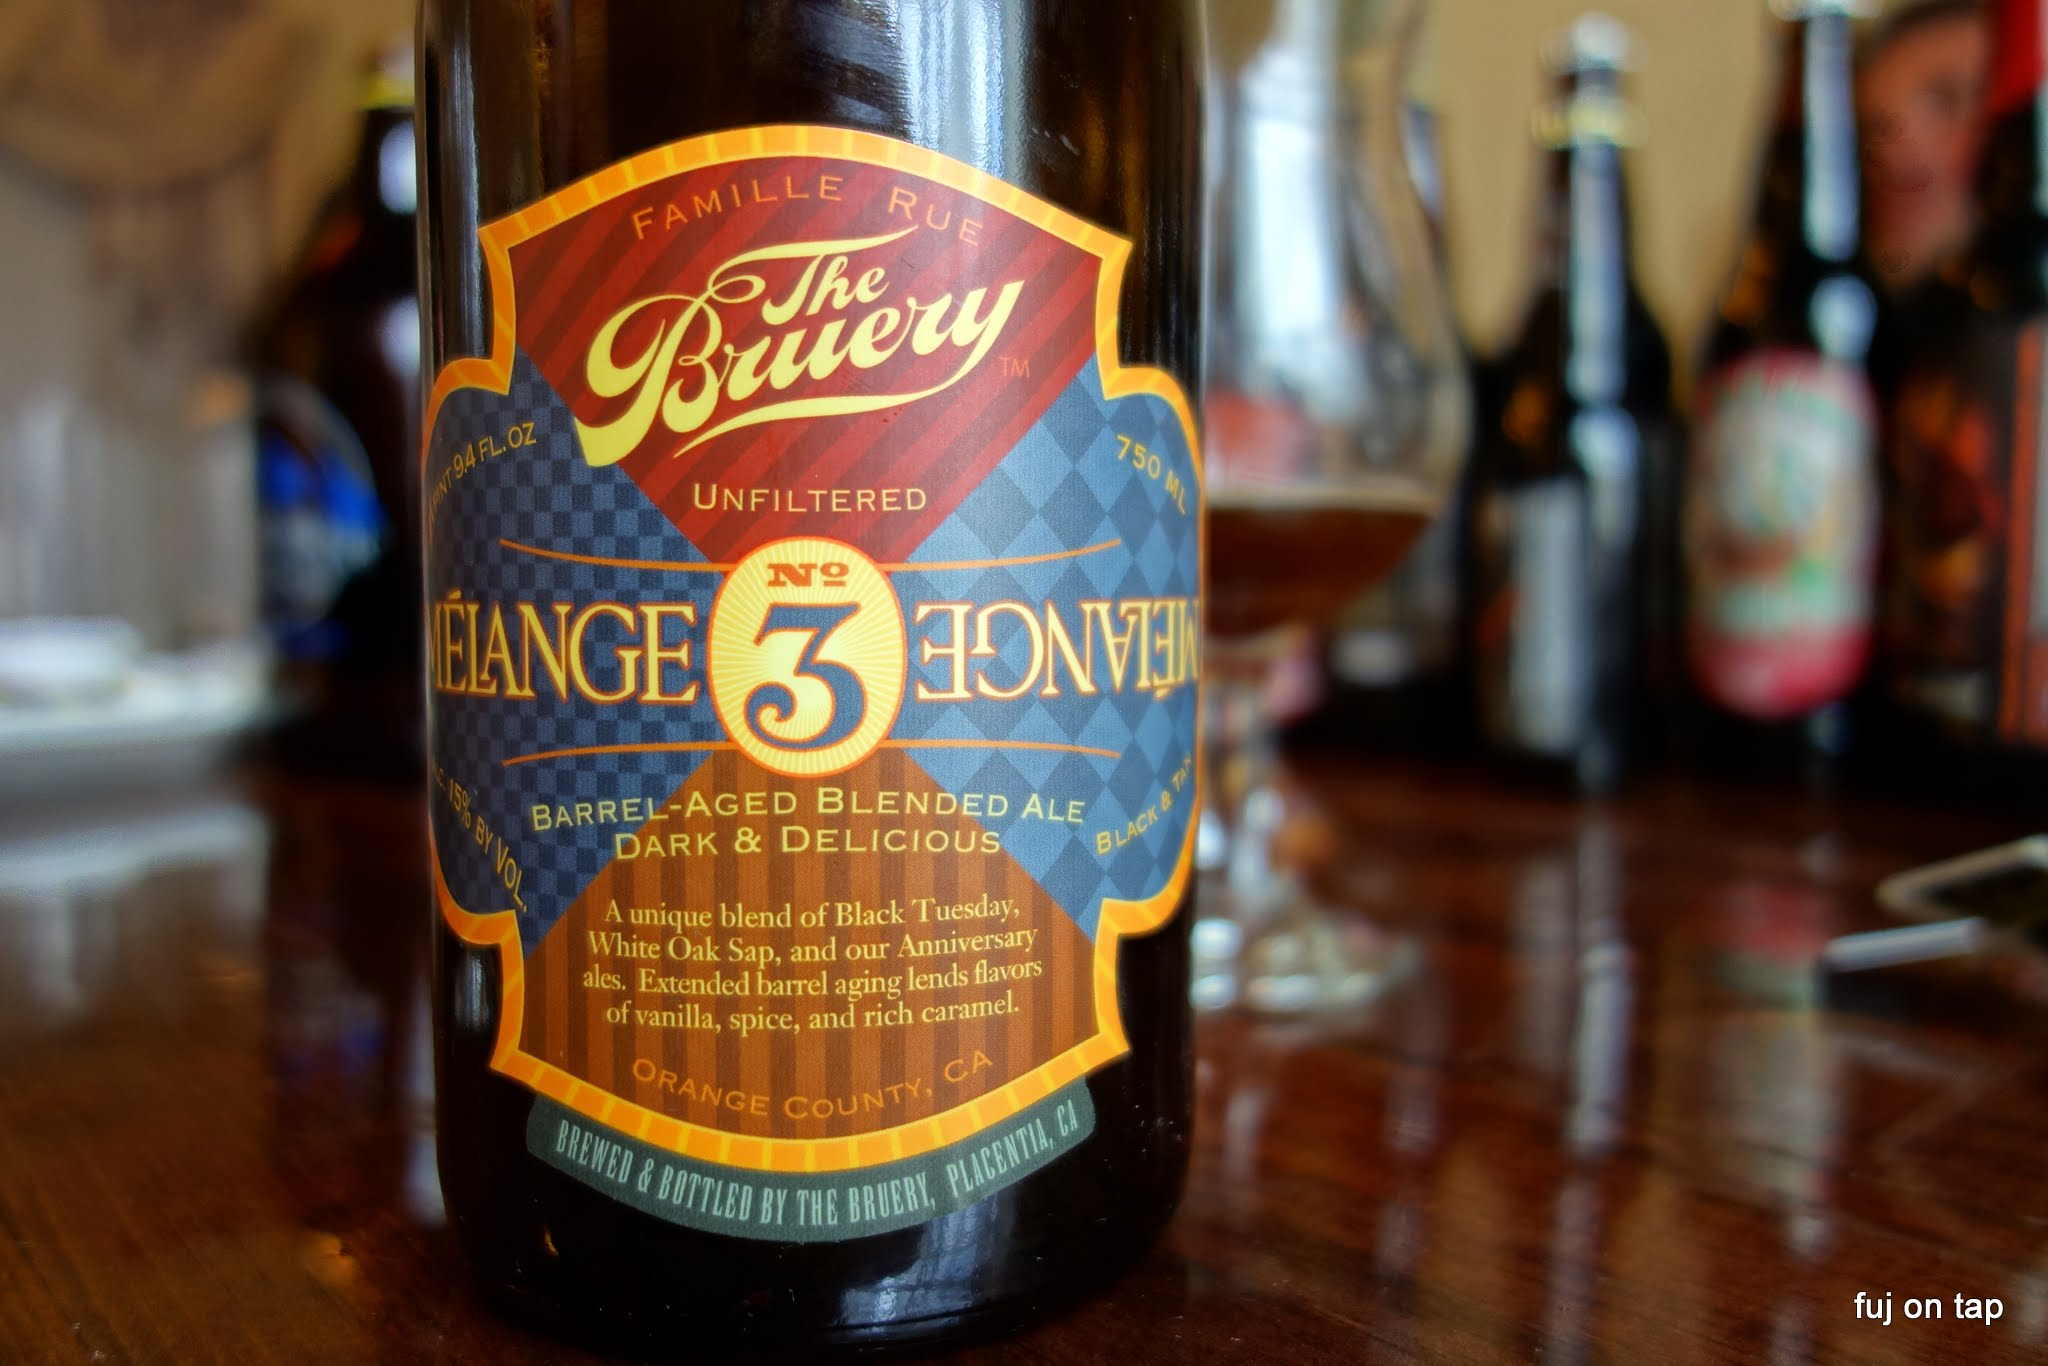 The Bruery Melange No 3